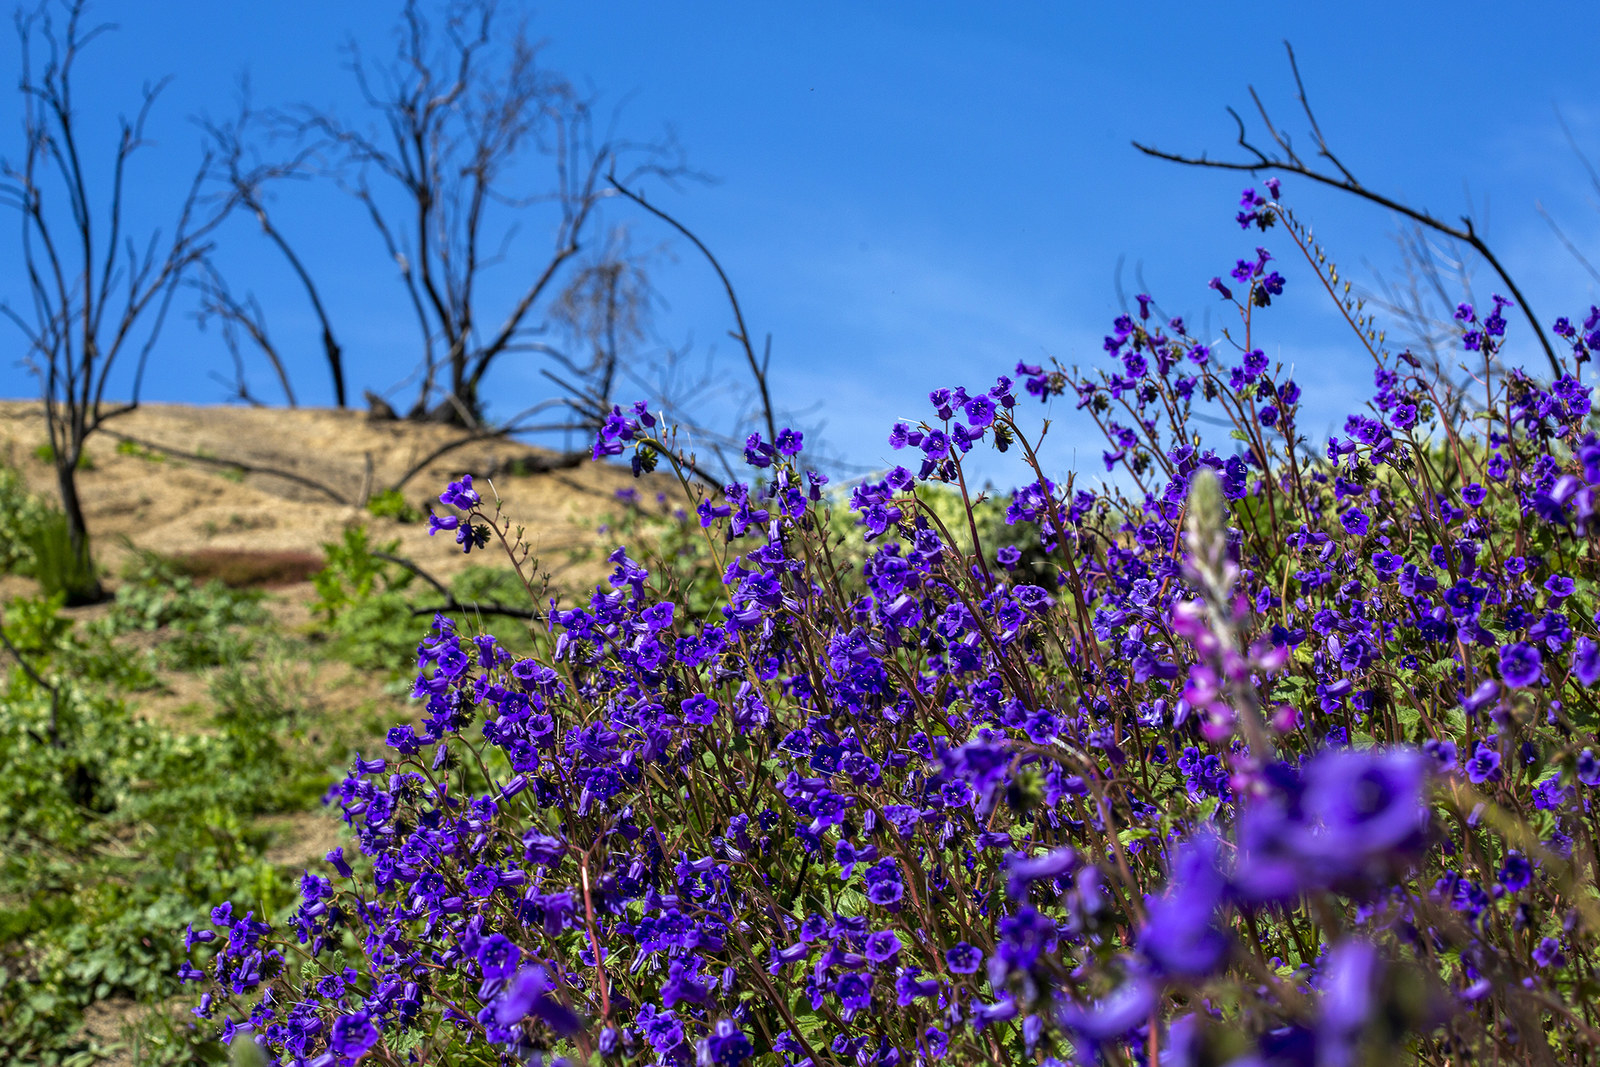 Canterbury bells bloom near the charred remains of the Holy fire, March 15.